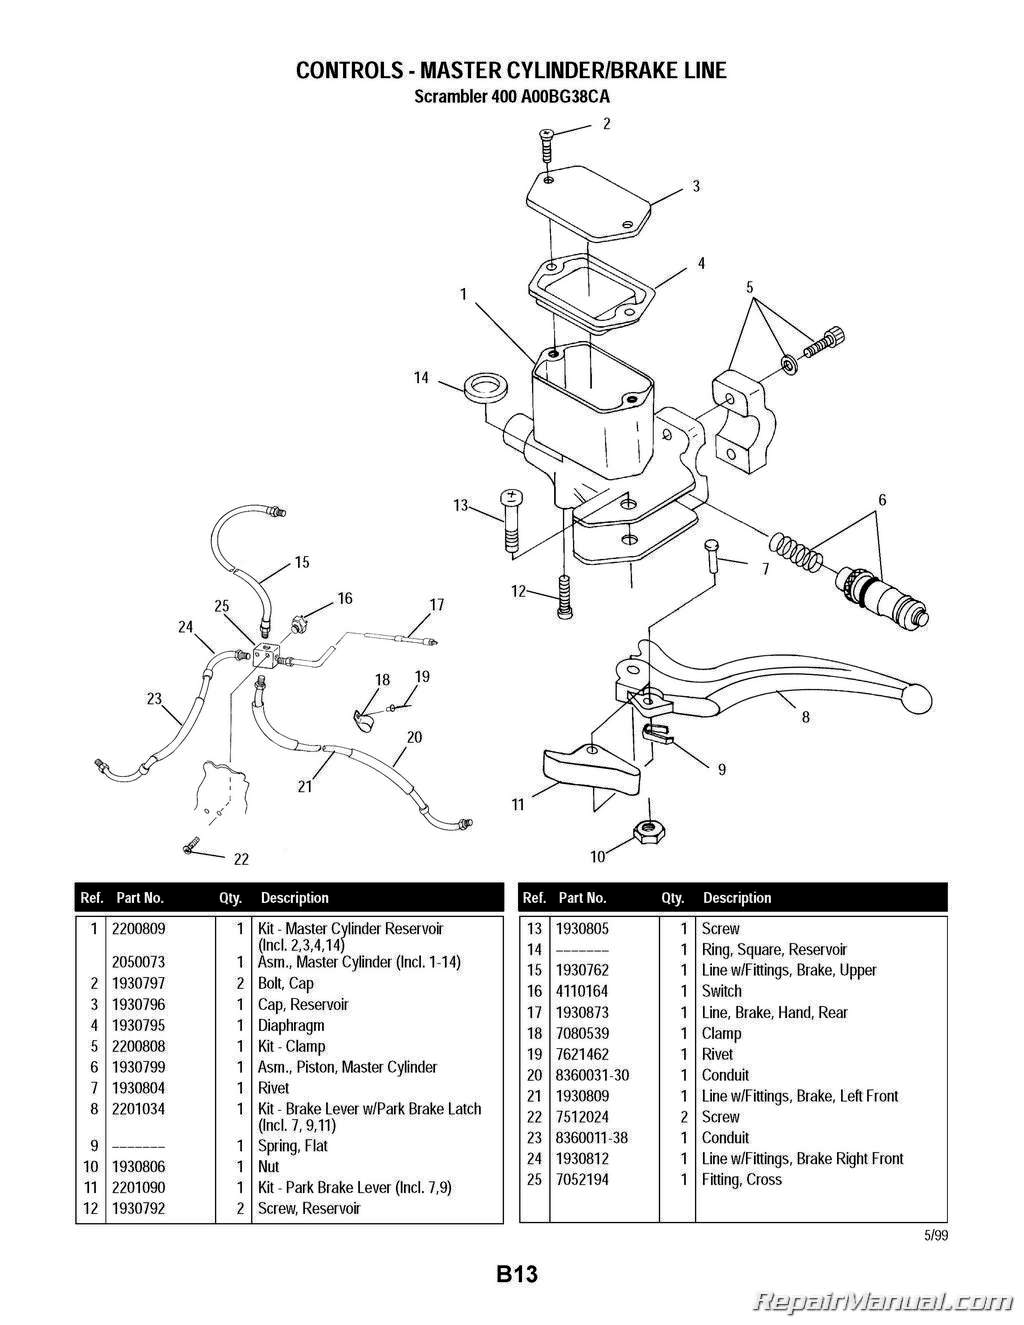 Polaris Scrambler 400 4 4 Atv Parts Manual